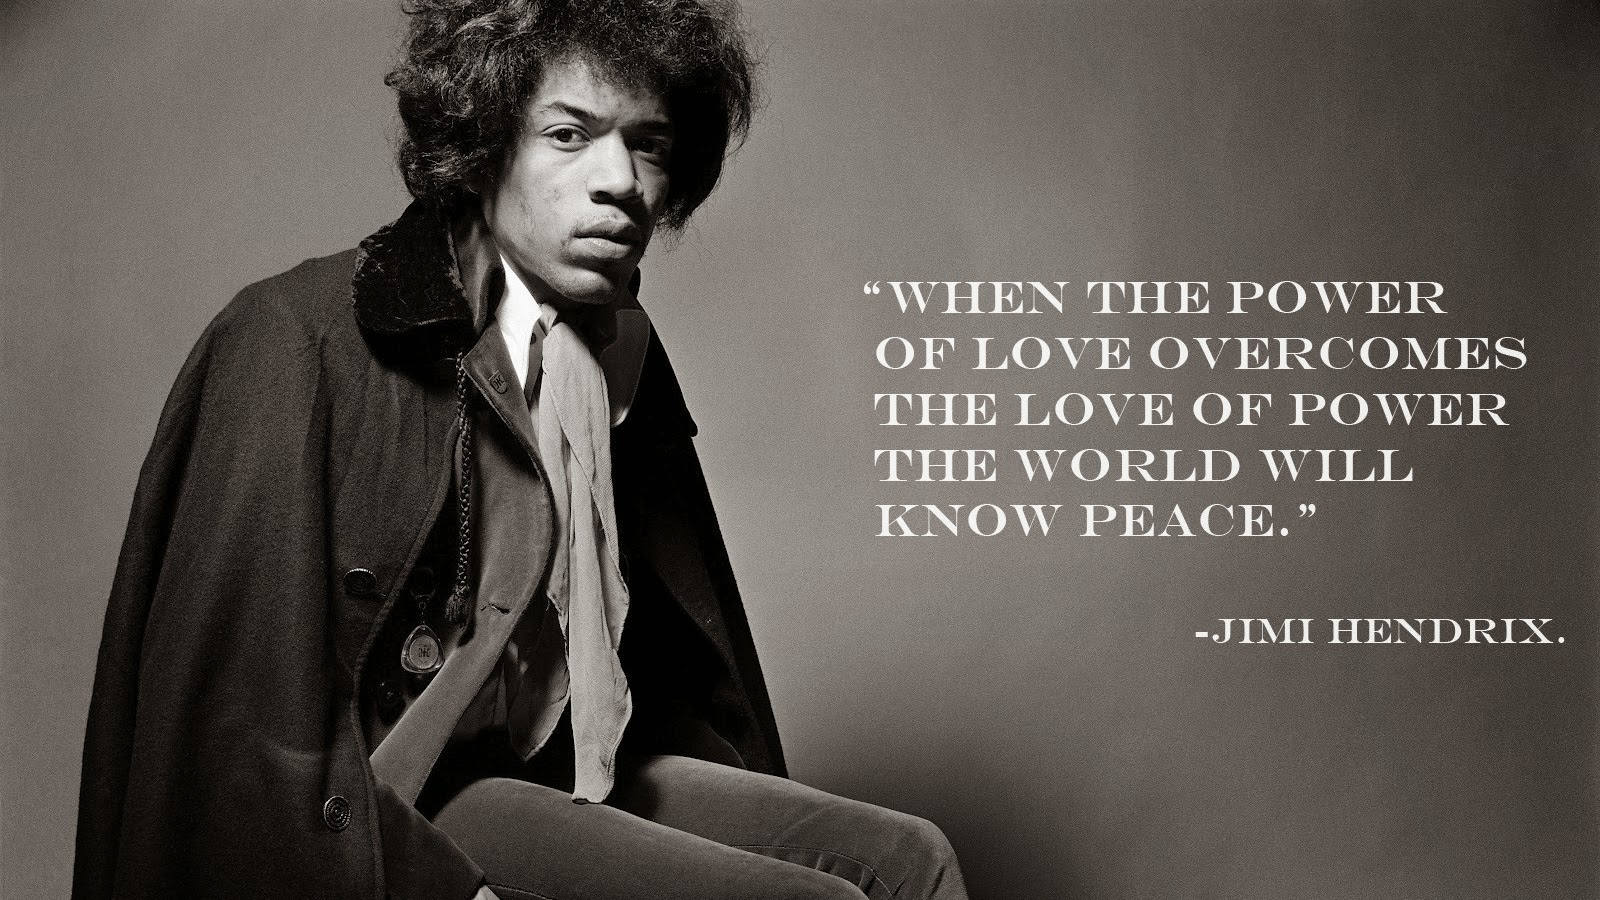 Bubbled Quotes: Jimi Hendrix Quotes and Sayings